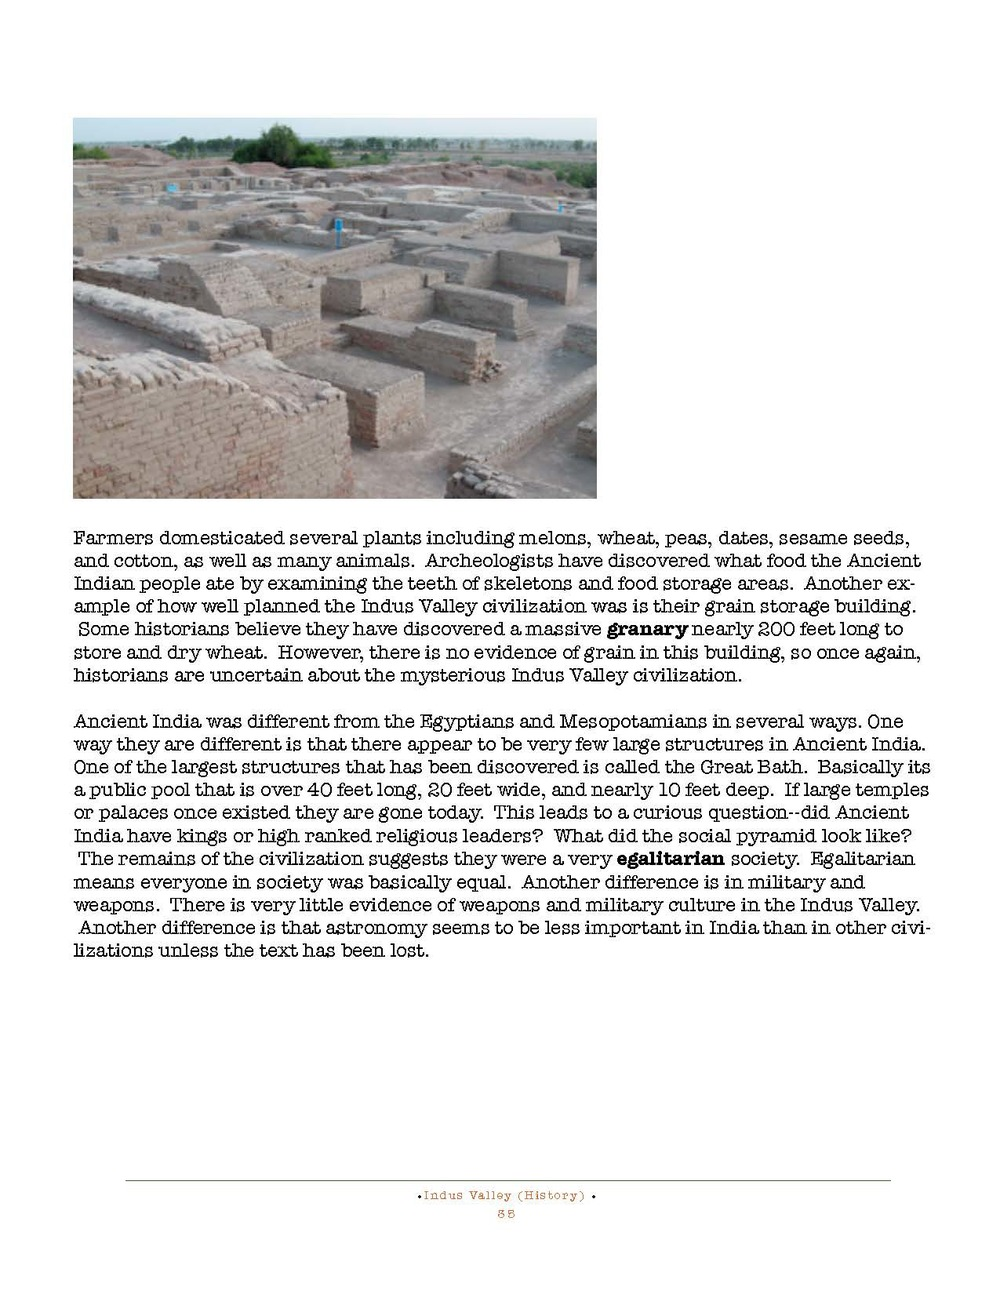 HOCE- Ancient India Notes_Page_035.jpg